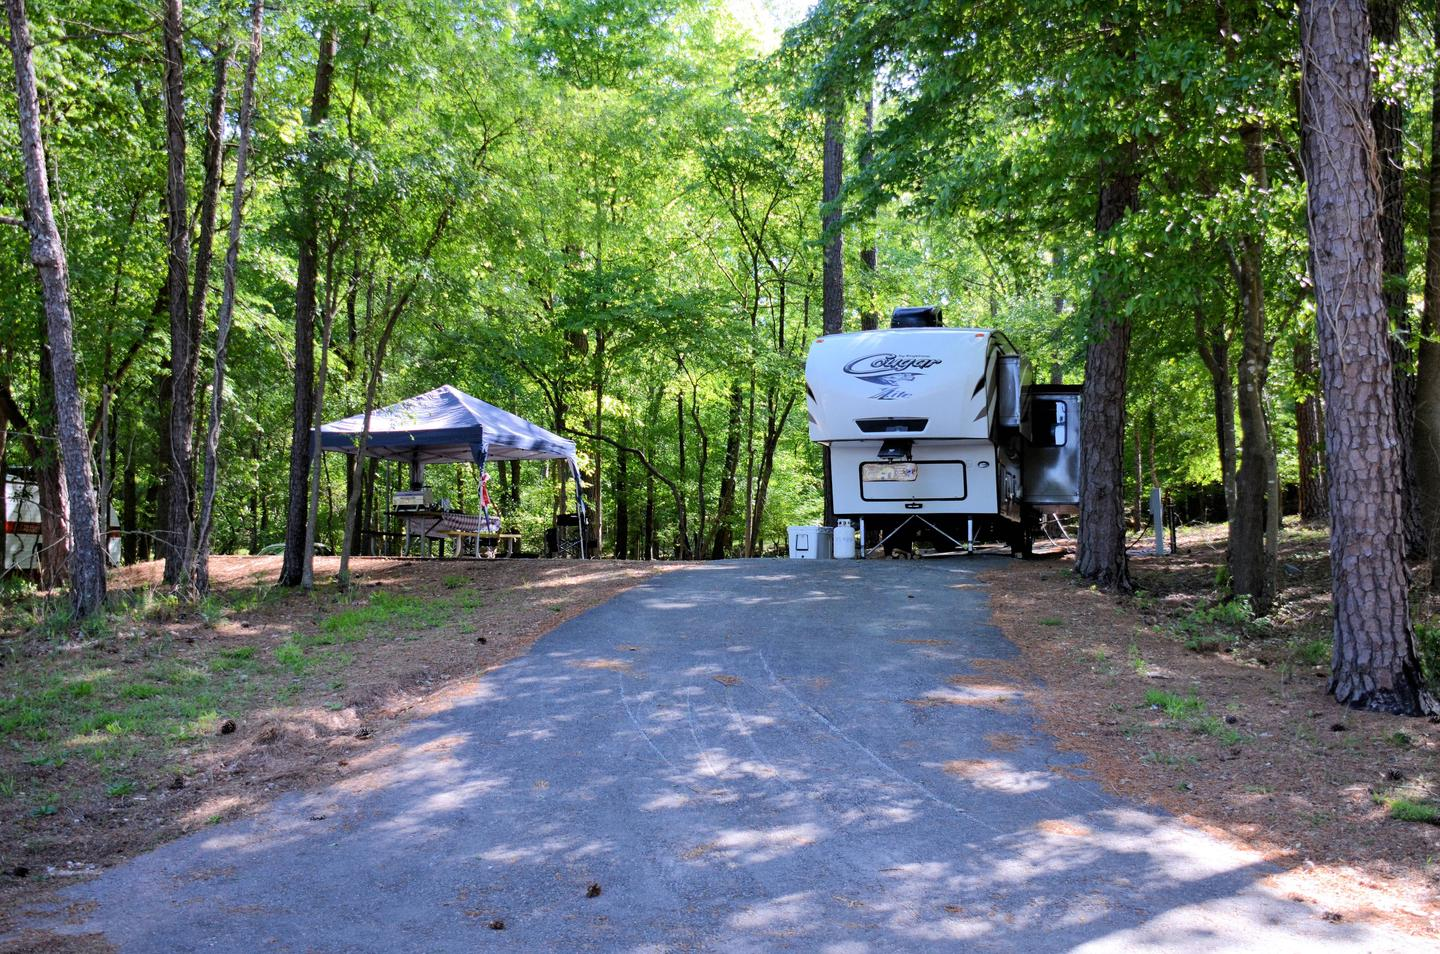 Driveway (pull-thru), utilities-side clearanceMcKinney Campground, campsite 32